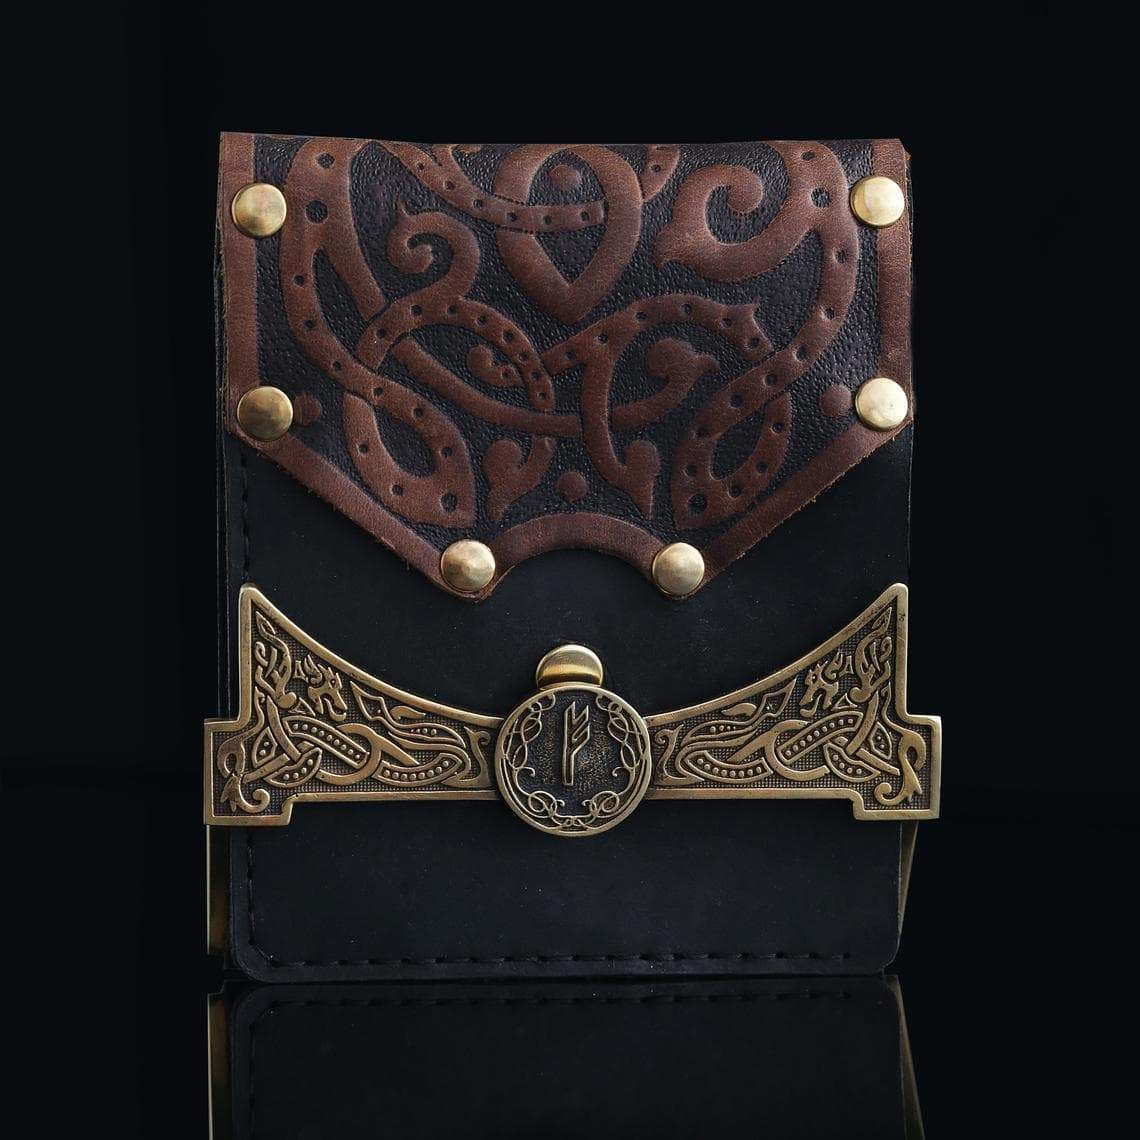 Viking Leather Wallet with Rune Fehu Metal Buckle